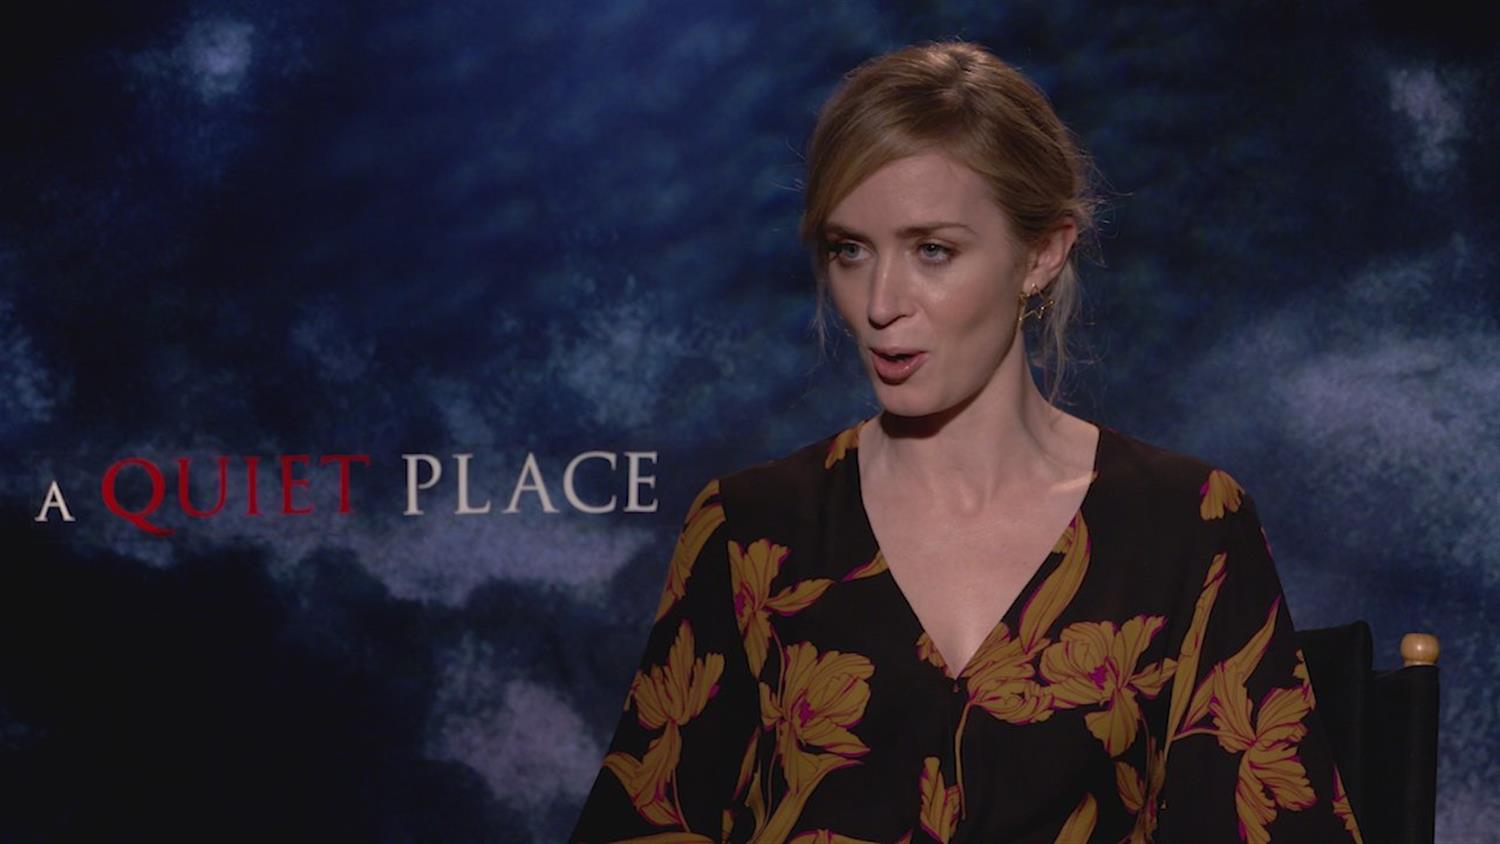 A Quiet Place's Emily Blunt on Slasher Films, Giving Birth in Silence and My Little Pony